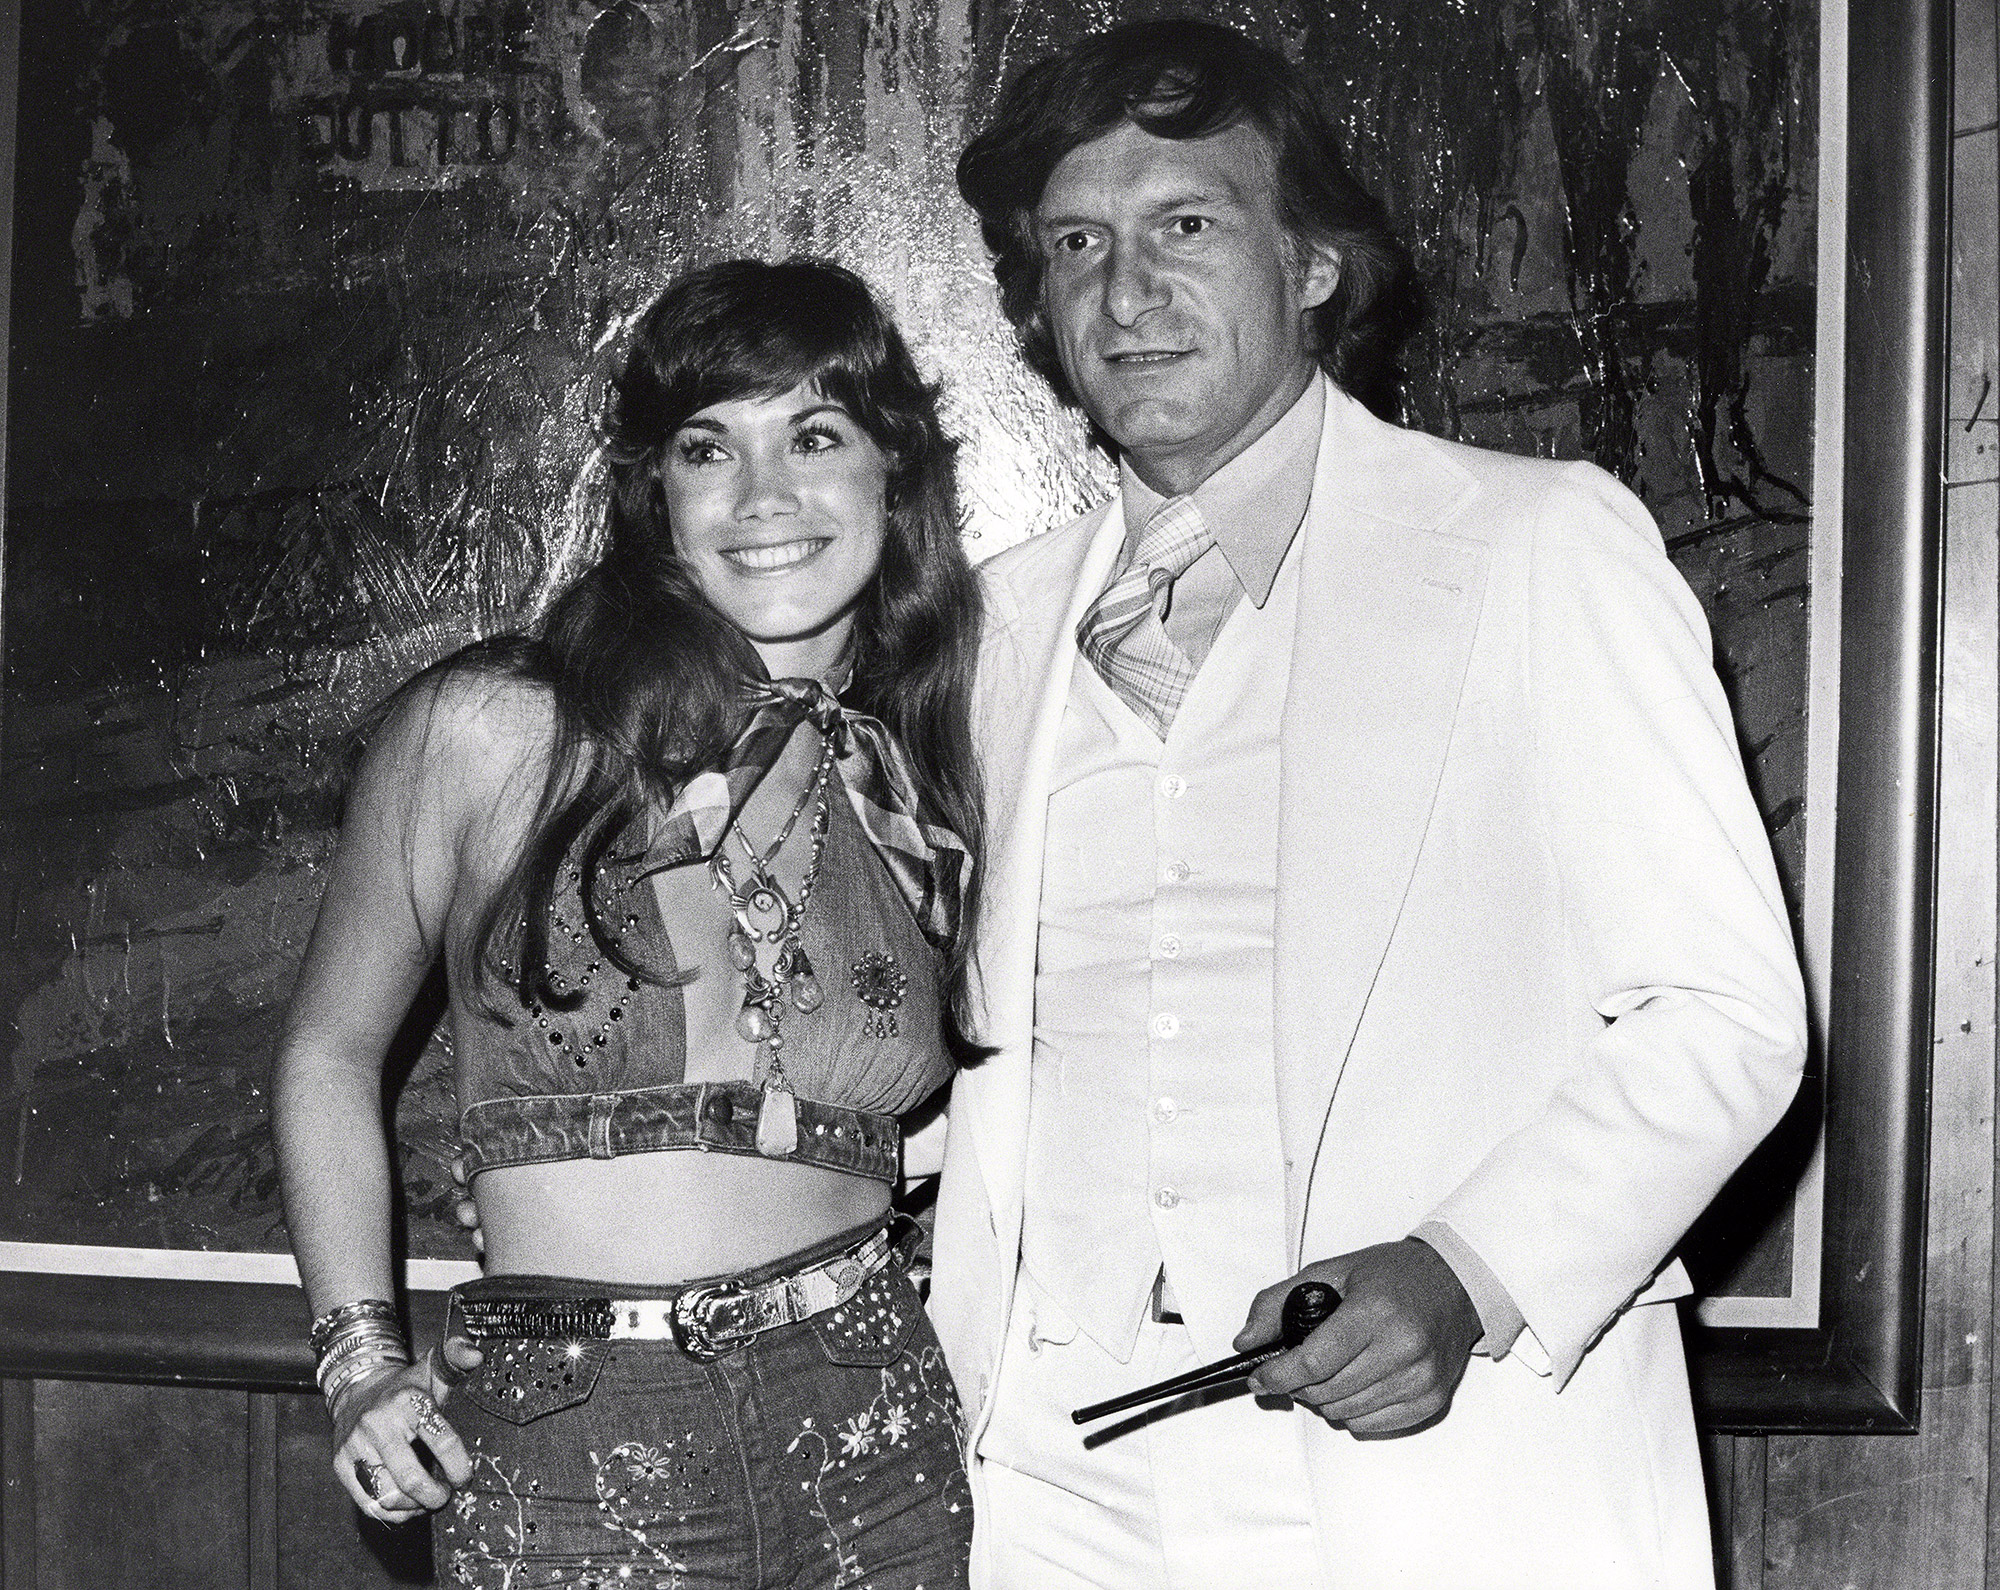 Barbi Benton and Hugh Hefner at the Playboy Club